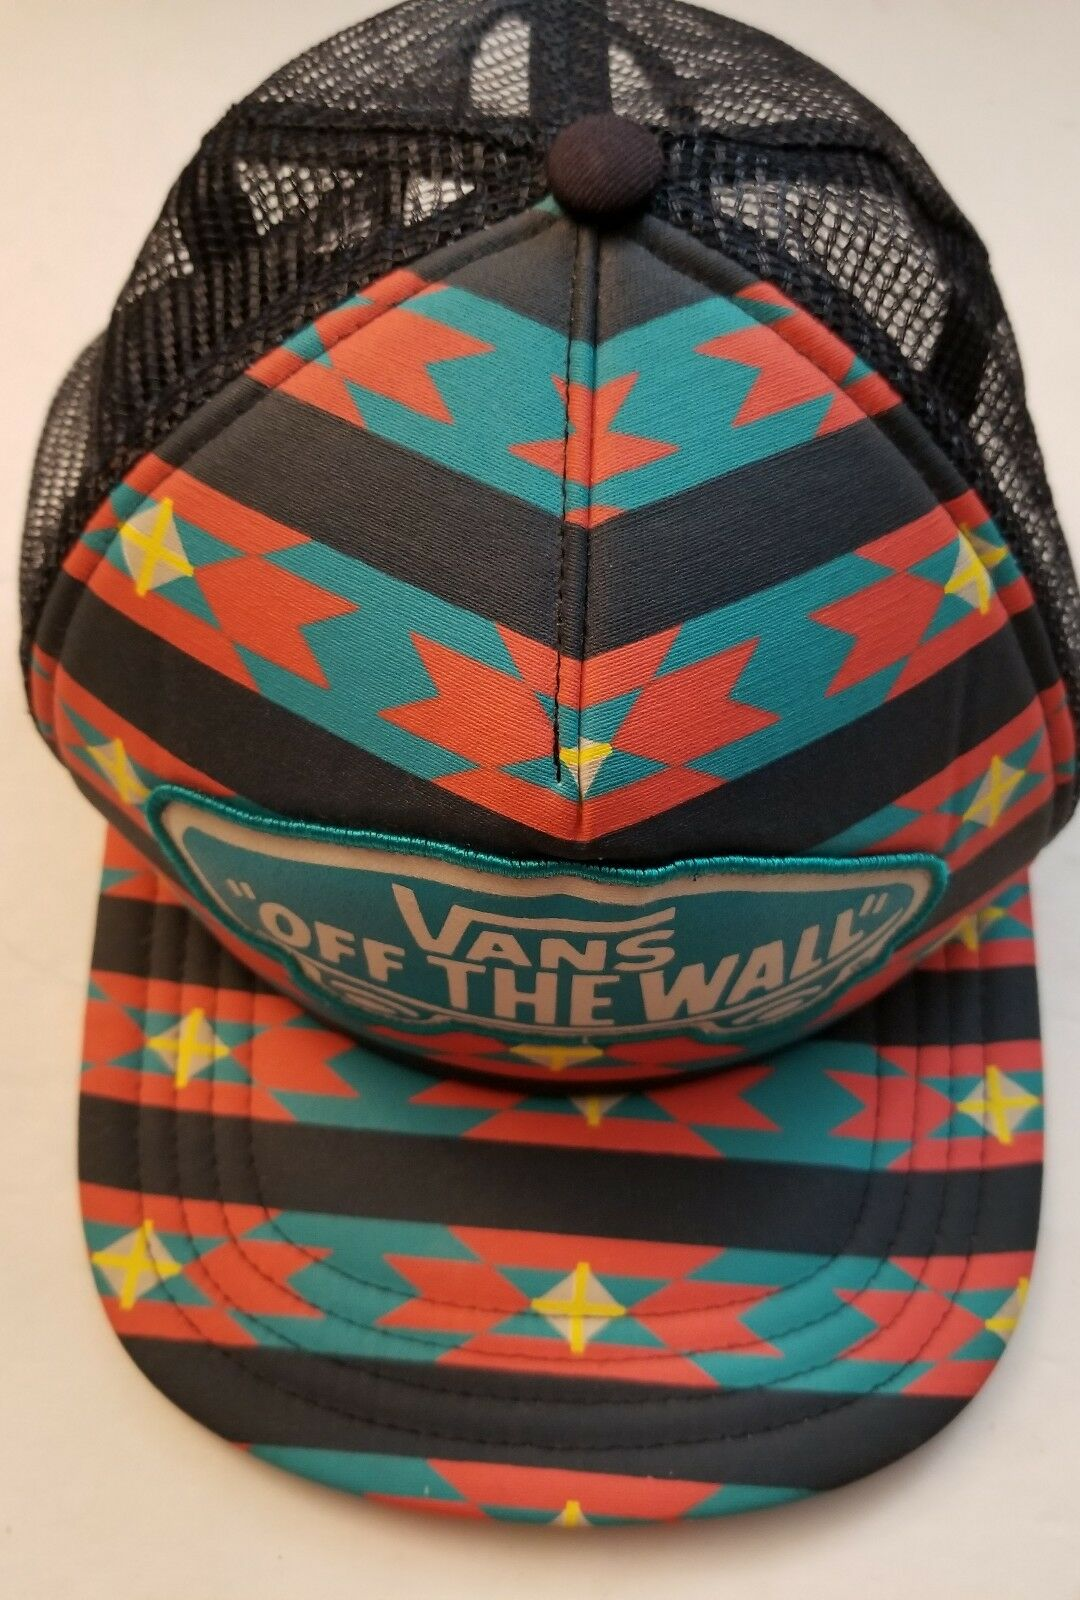 Vans Off Style the Wall Native Navajo Style Off Snapback Hat Cap NWOT d0478c